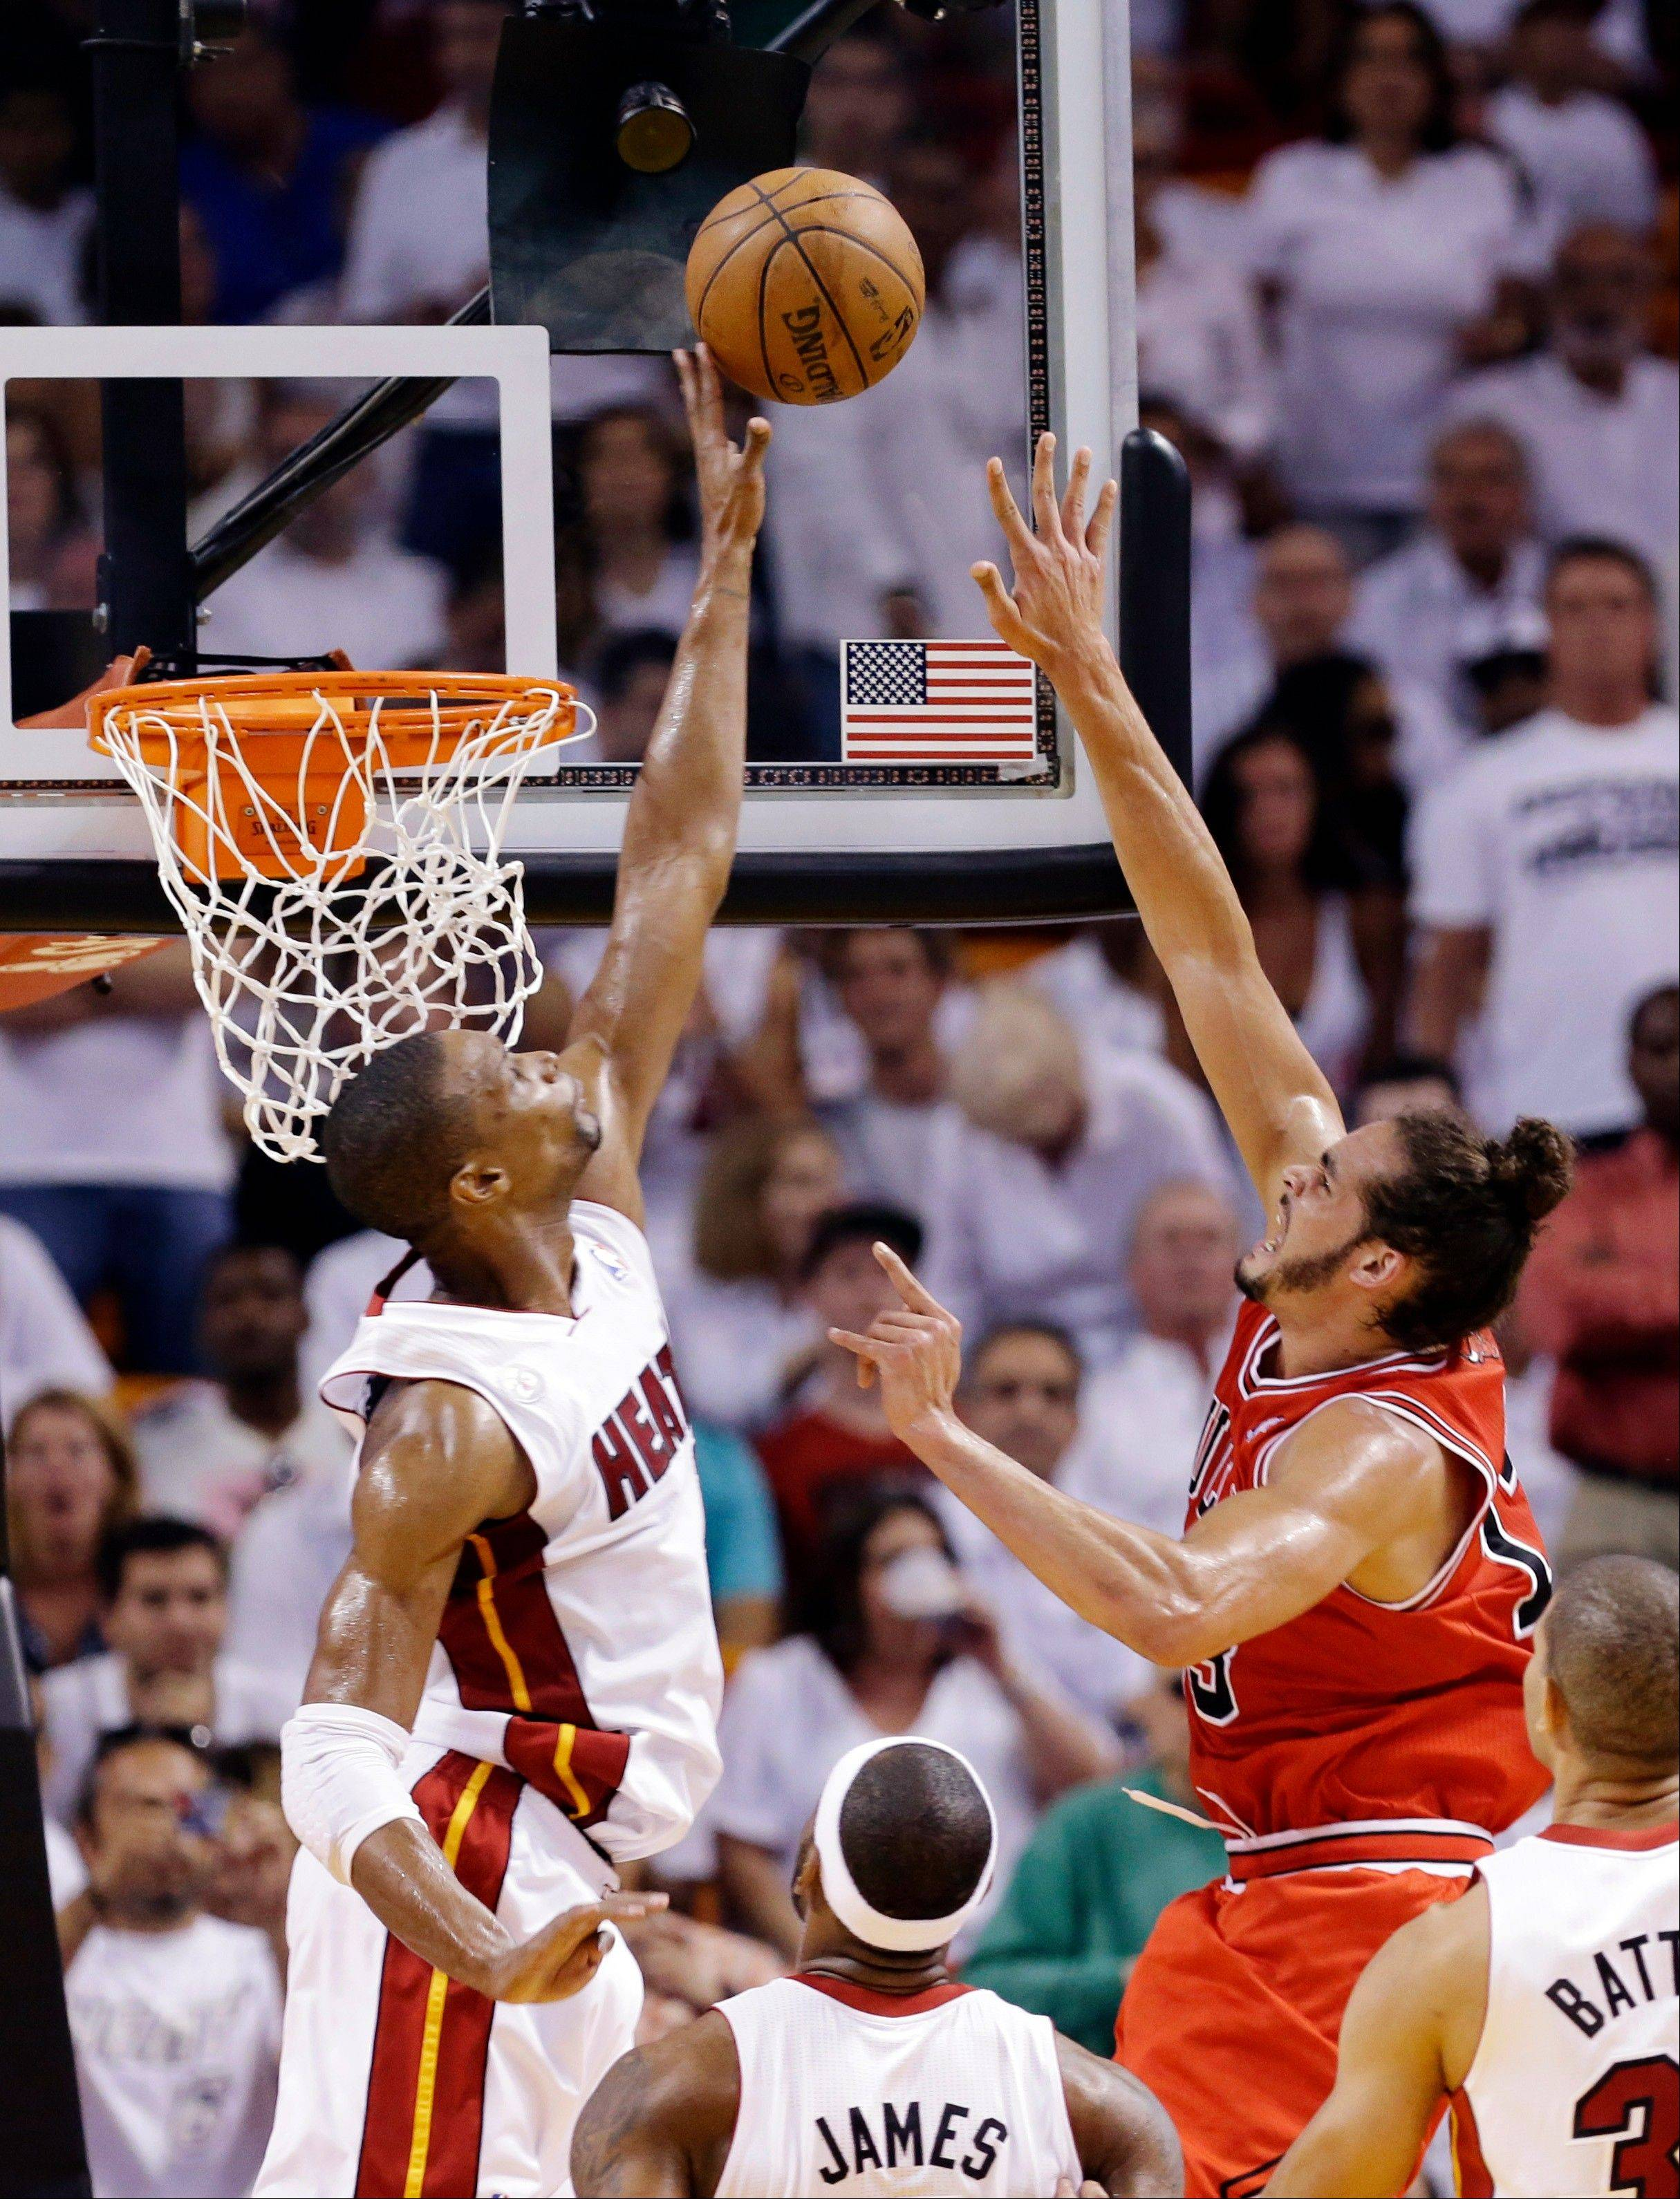 Miami Heat center Chris Bosh, left, blocks a shot by Chicago Bulls center Joakim Noah during the first half of Game 2 of their NBA basketball playoff series in the Eastern Conference semifinals, Wednesday, May 8, 2013, in Miami. The Heat won 115-78.